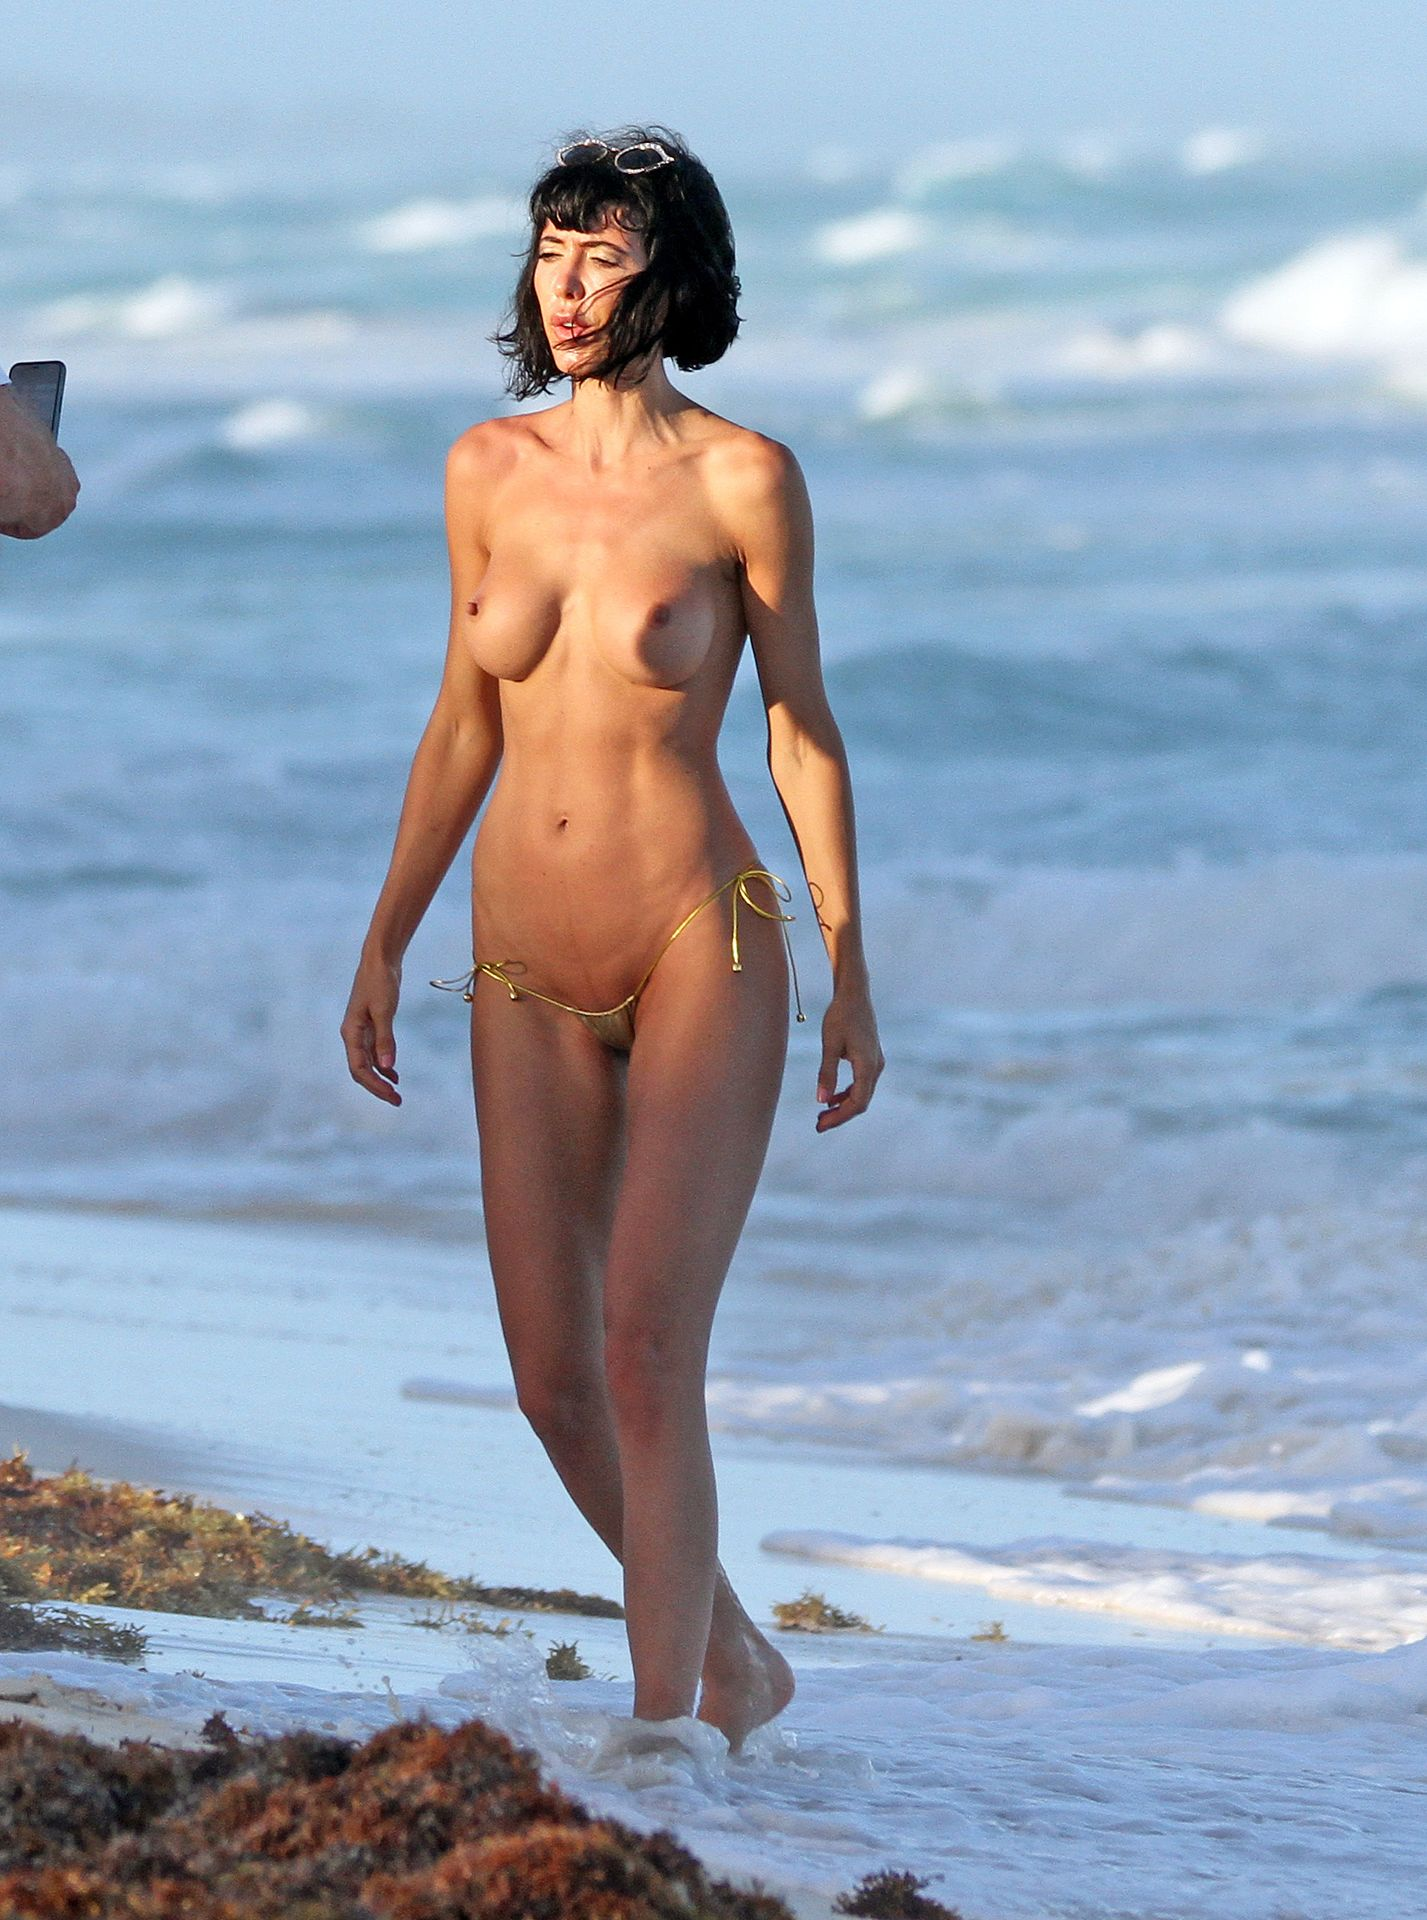 Milo-Moir-Nude-The-Fappening-Blog-4